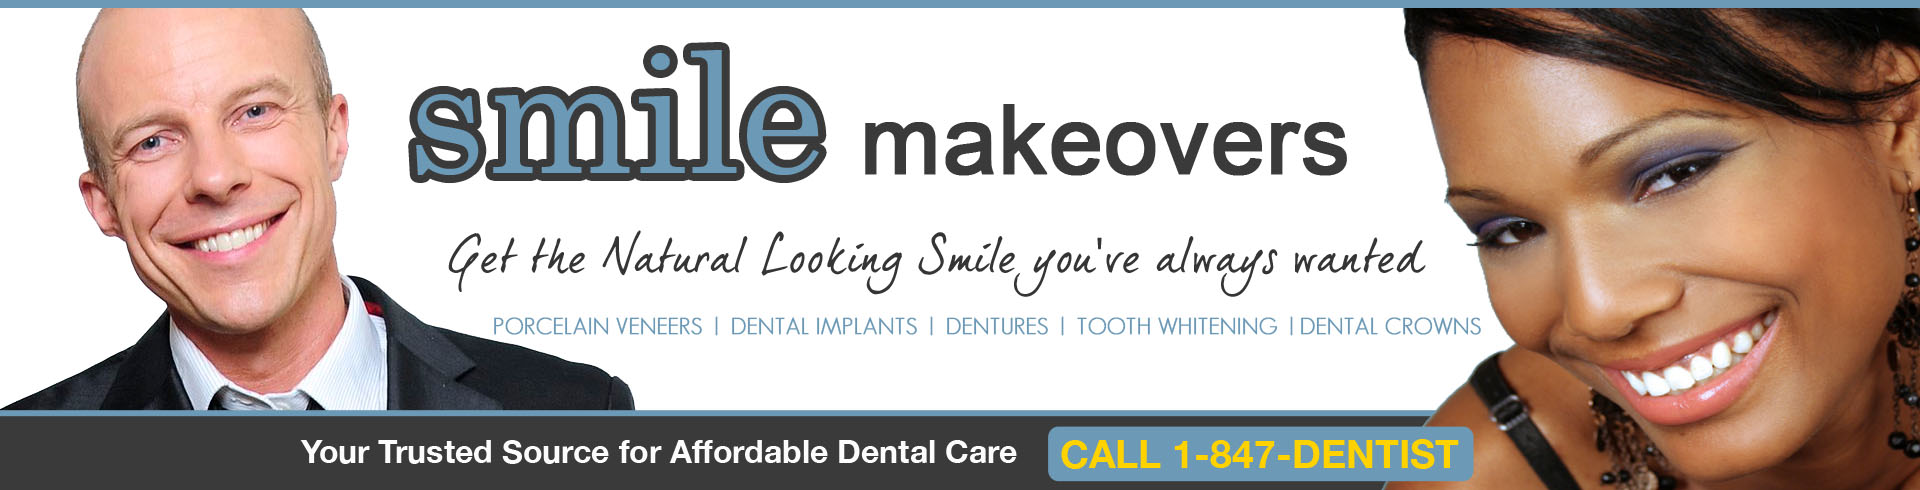 cosmetic dentist lake county il dental implants